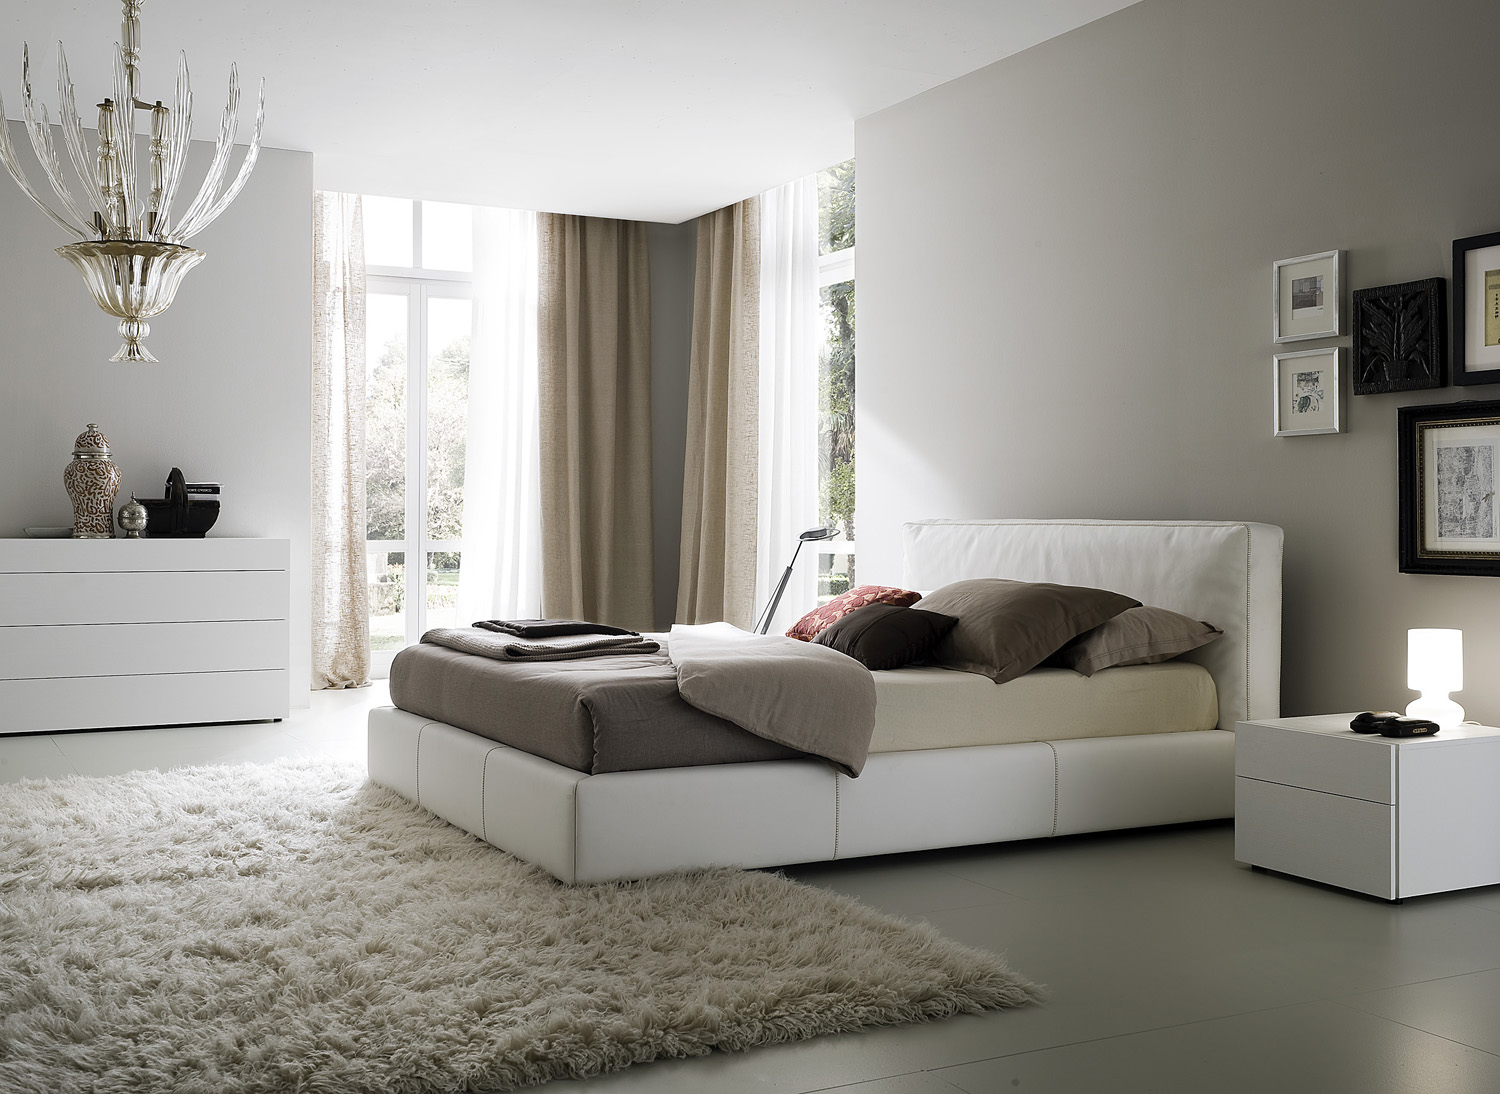 Bedroom decorating ideas from evinco for Bedroom ideas with pictures